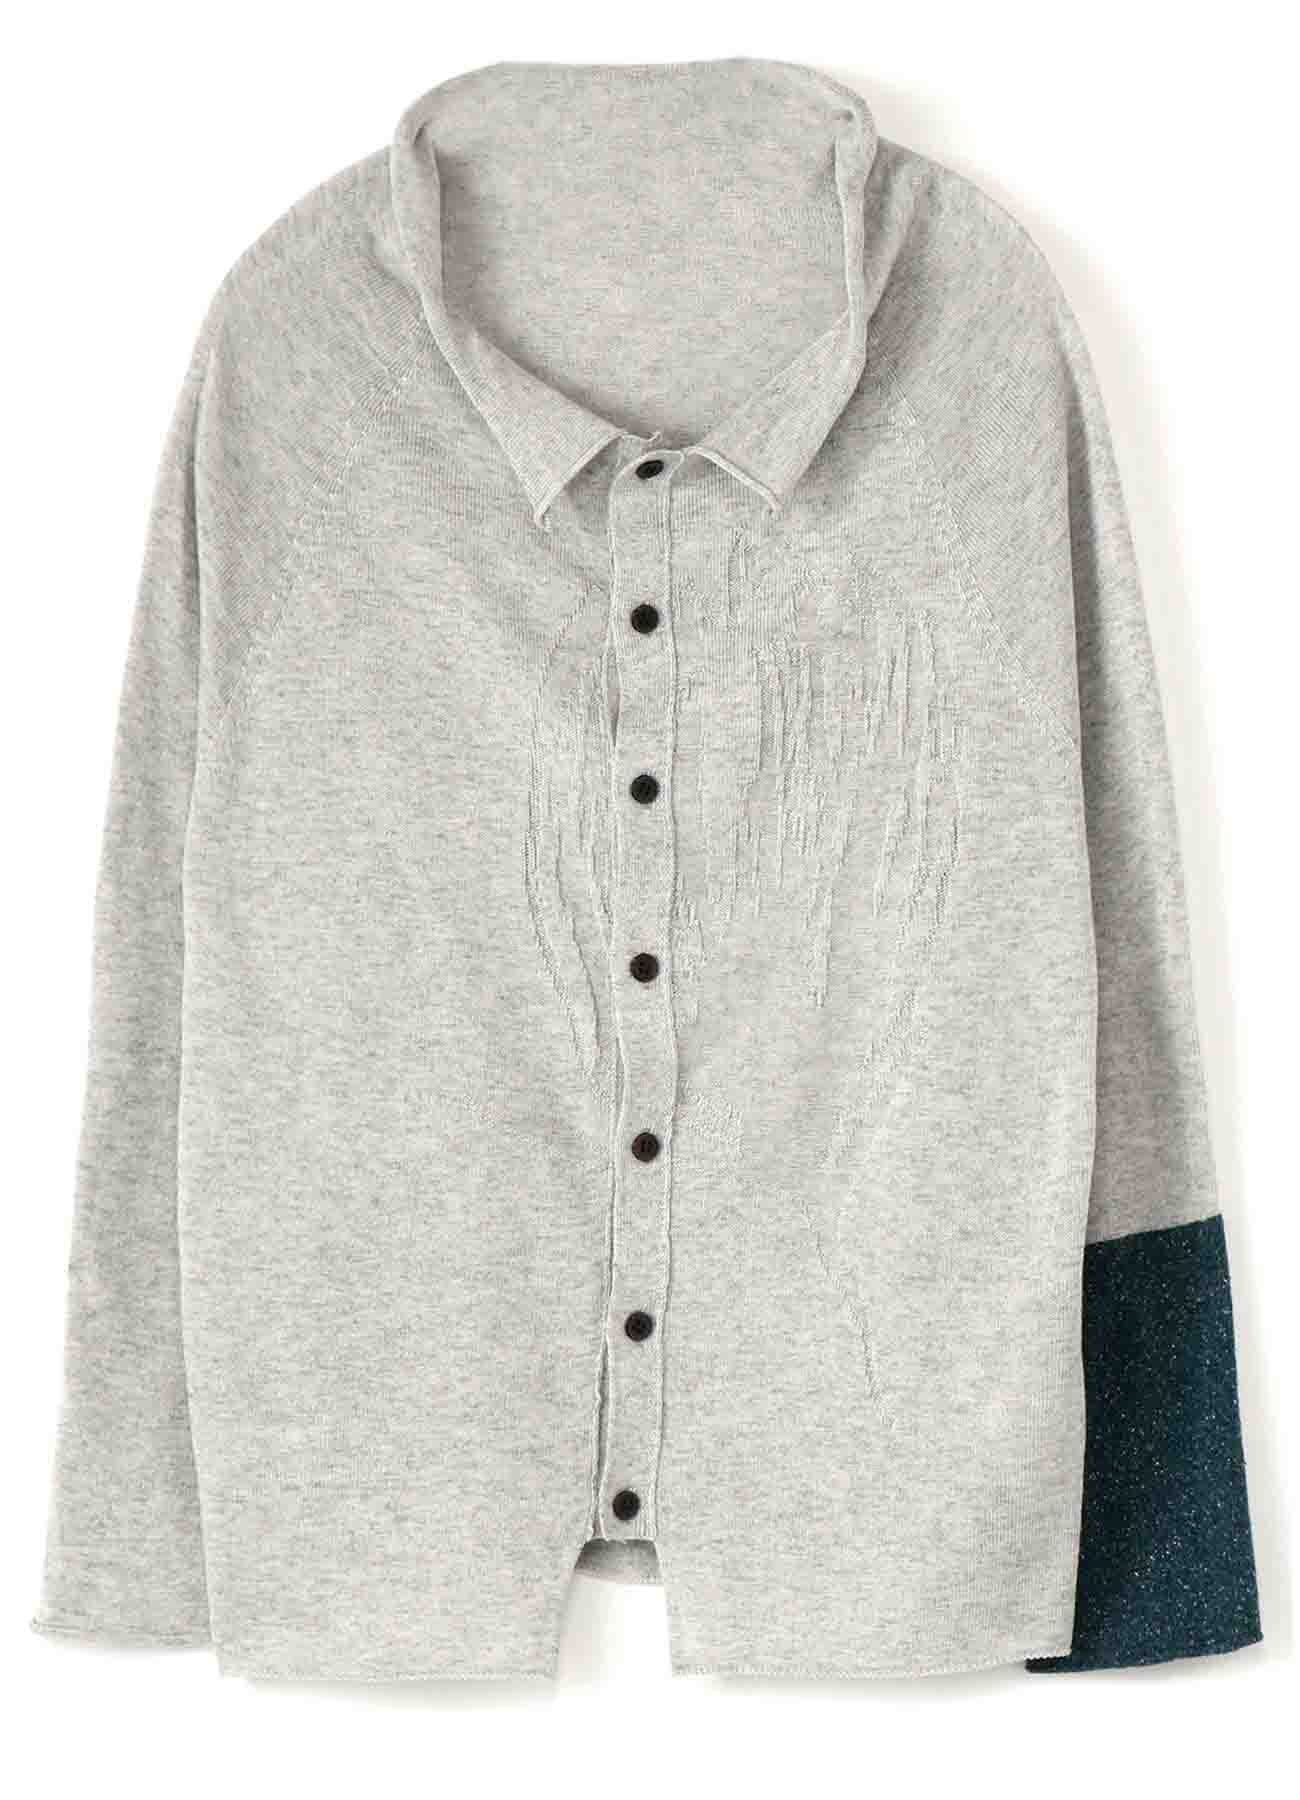 FROWER LINKS OFF NECK BUTTON CARDIGAN